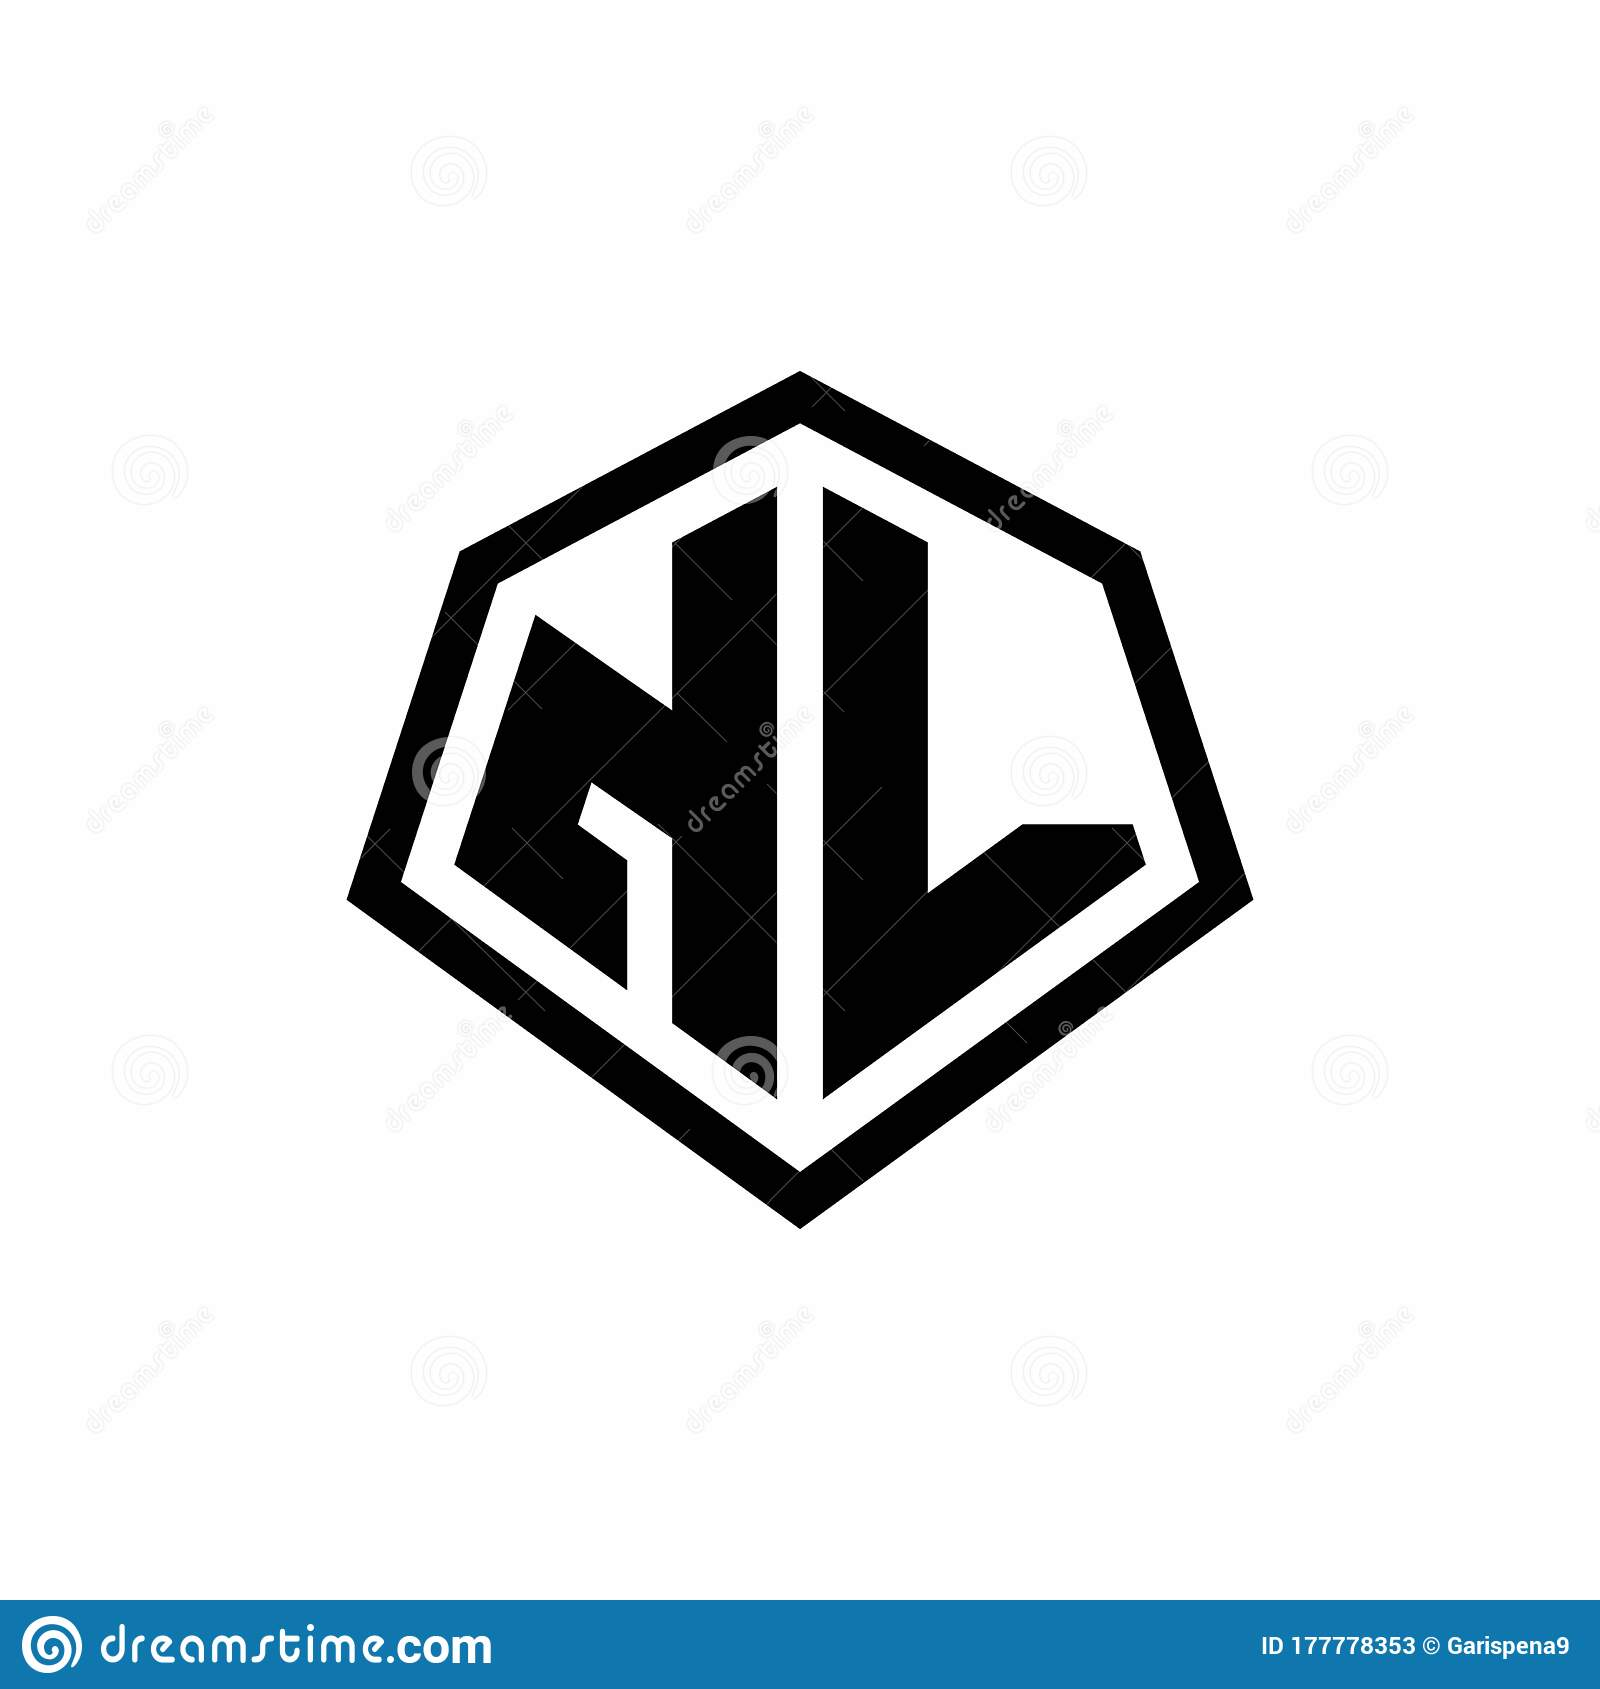 Nl Monogram Logo With Hexagon Shape And Line Rounded Style Design Template Stock Vector Illustration Of Graphic Elegance 177778353